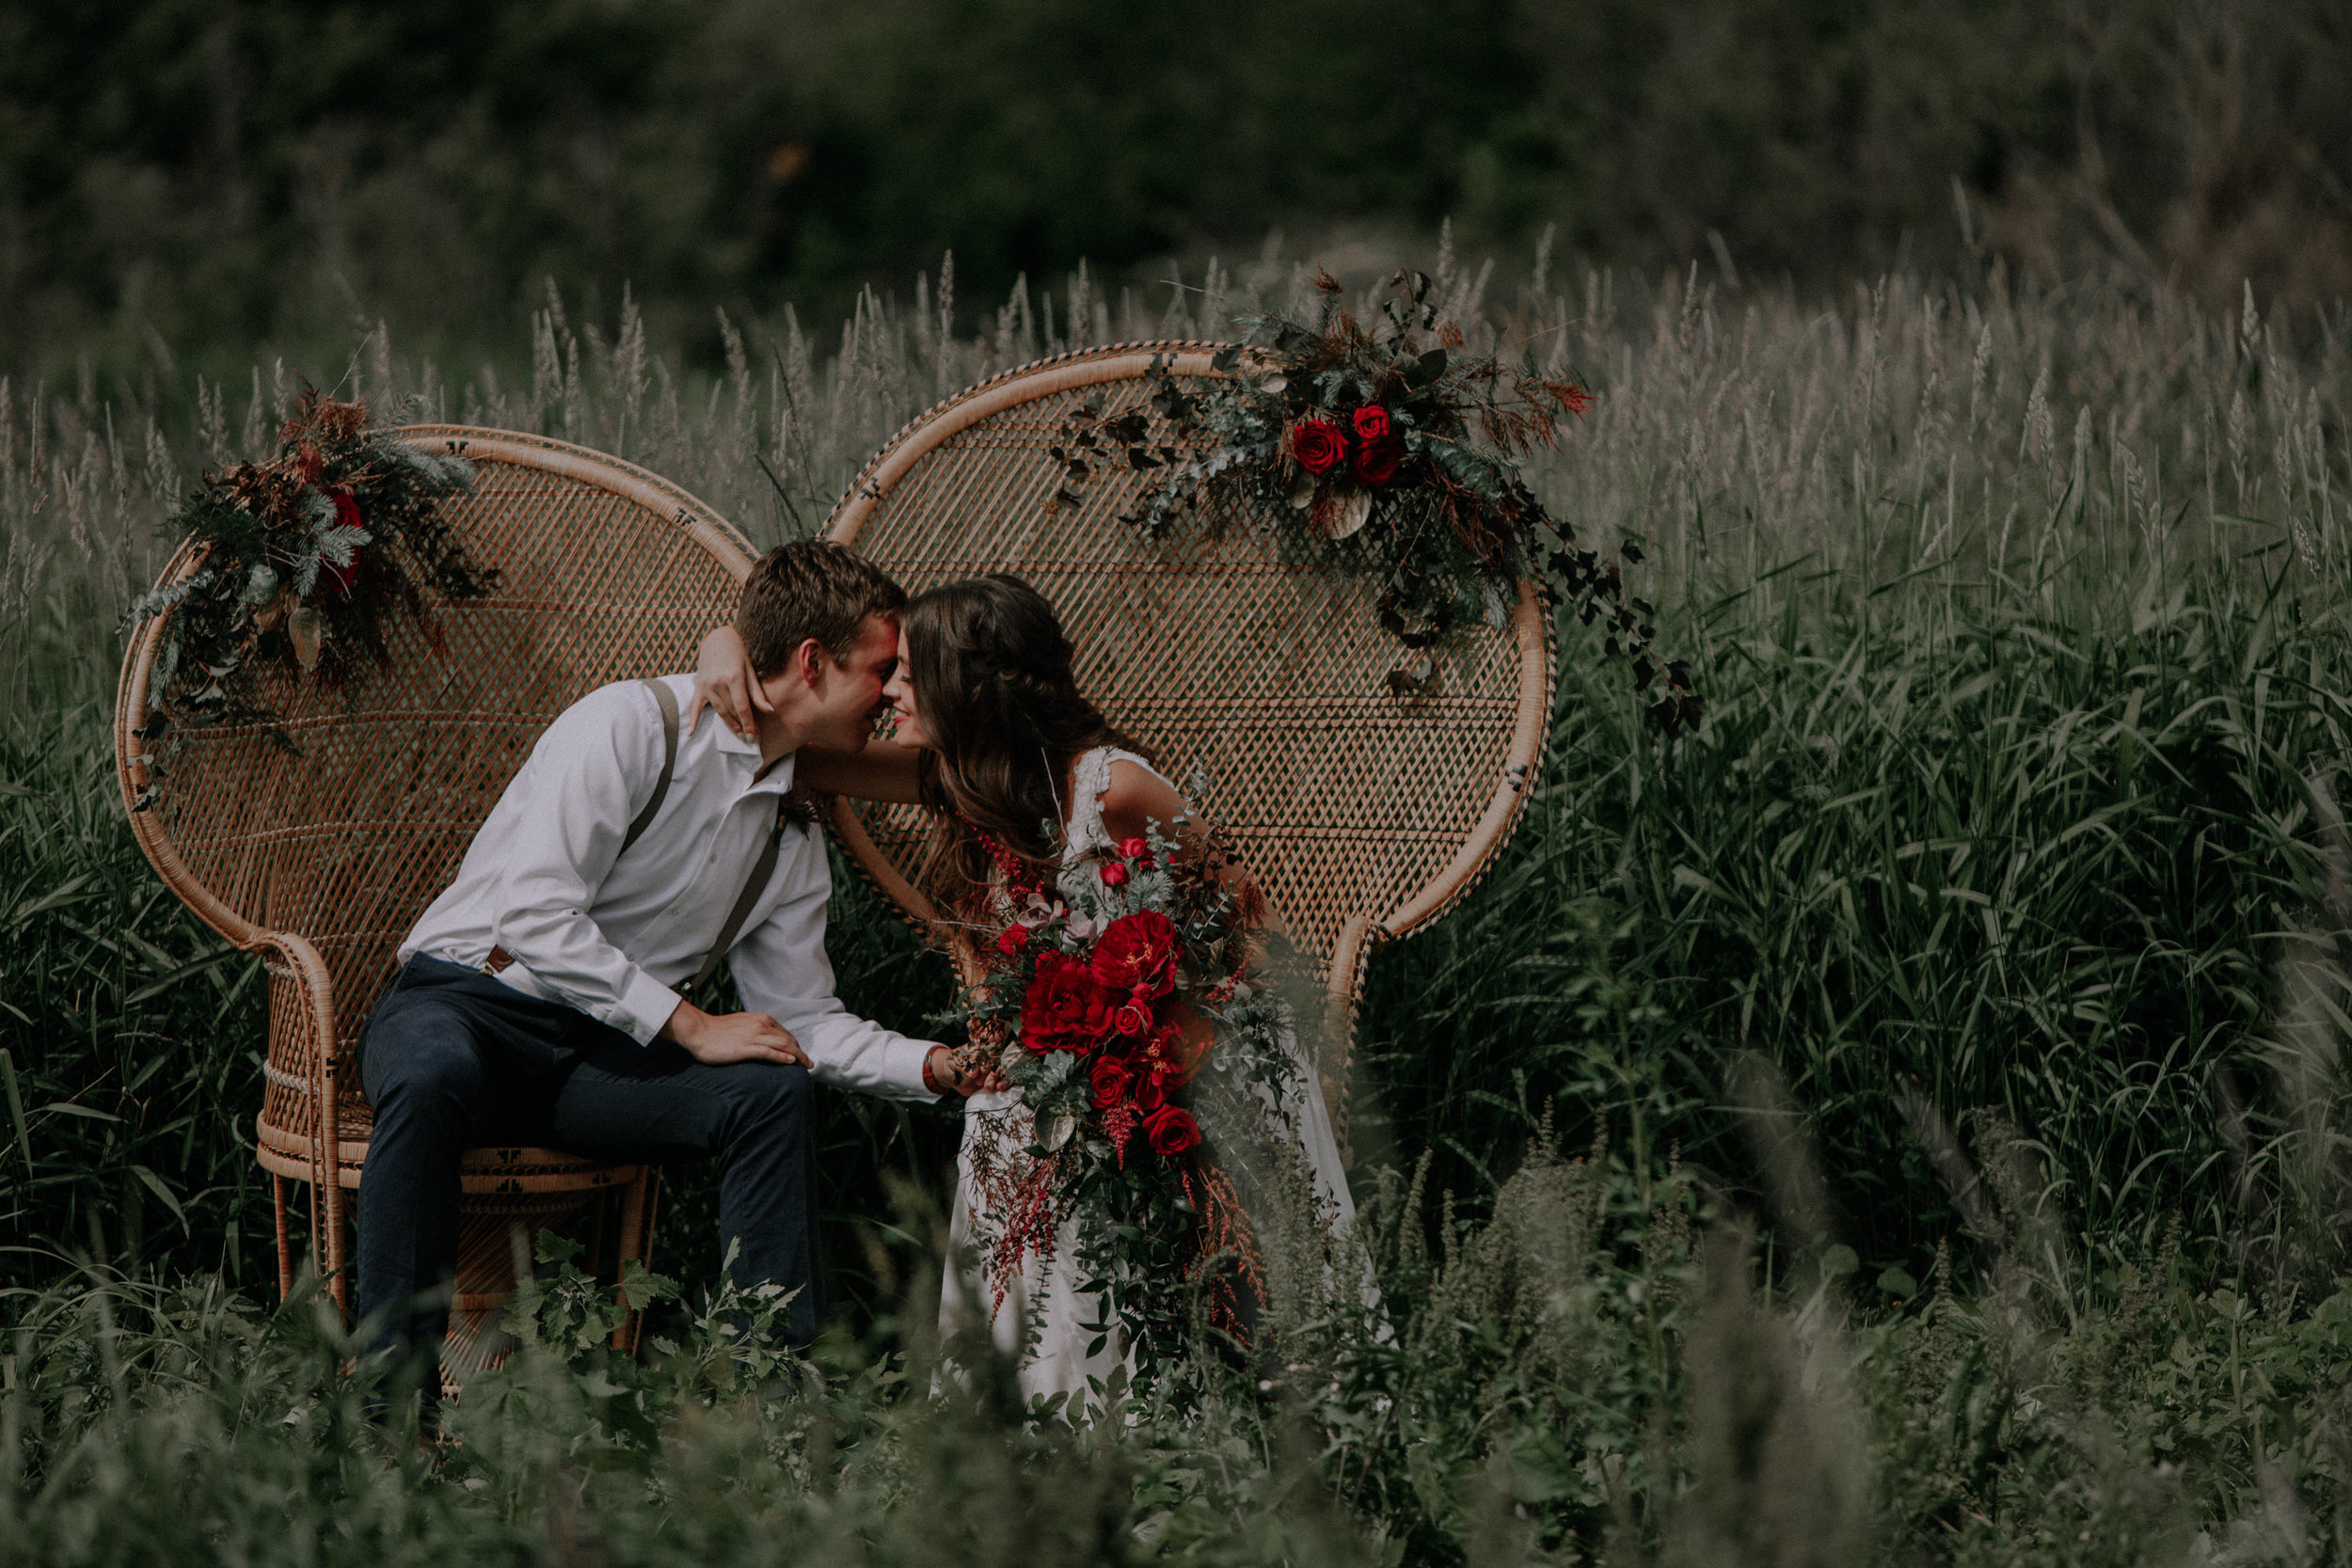 Wicker Chairs with Red Roses for Game of Thrones Wedding Elopement